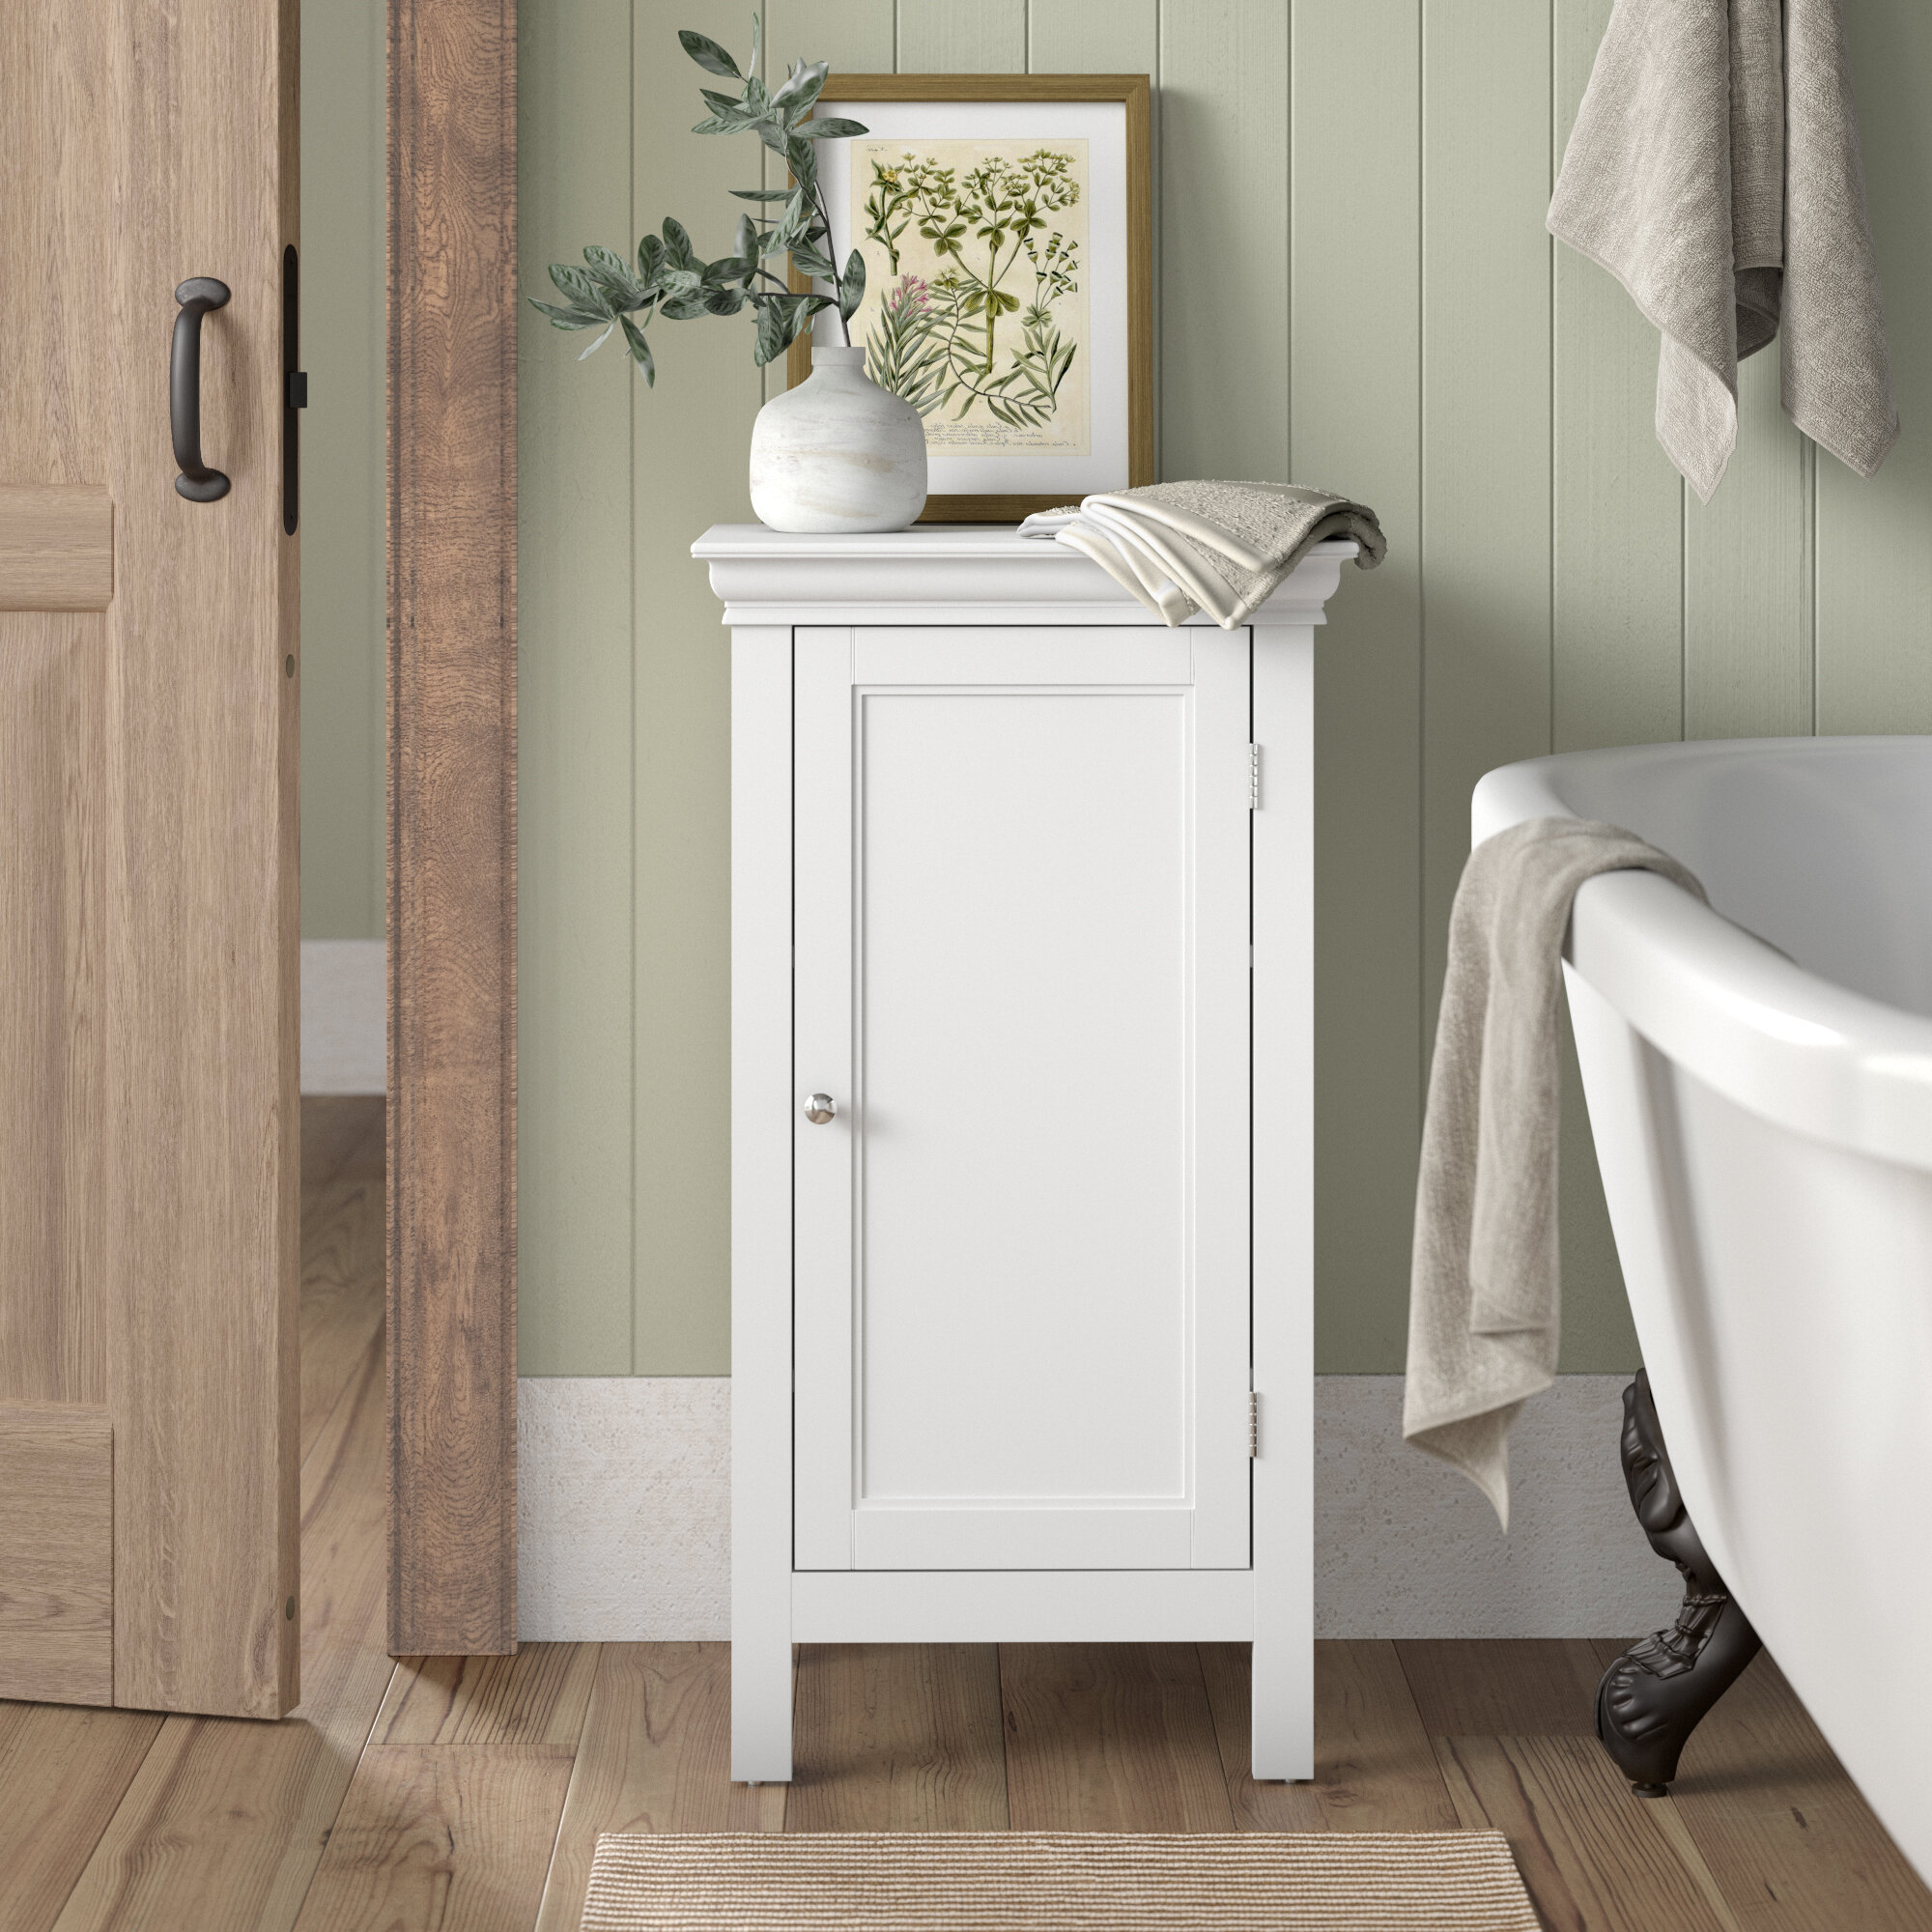 Caspar 18 W X 34 H X 14 D Free Standing Bathroom Cabinet Reviews Birch Lane